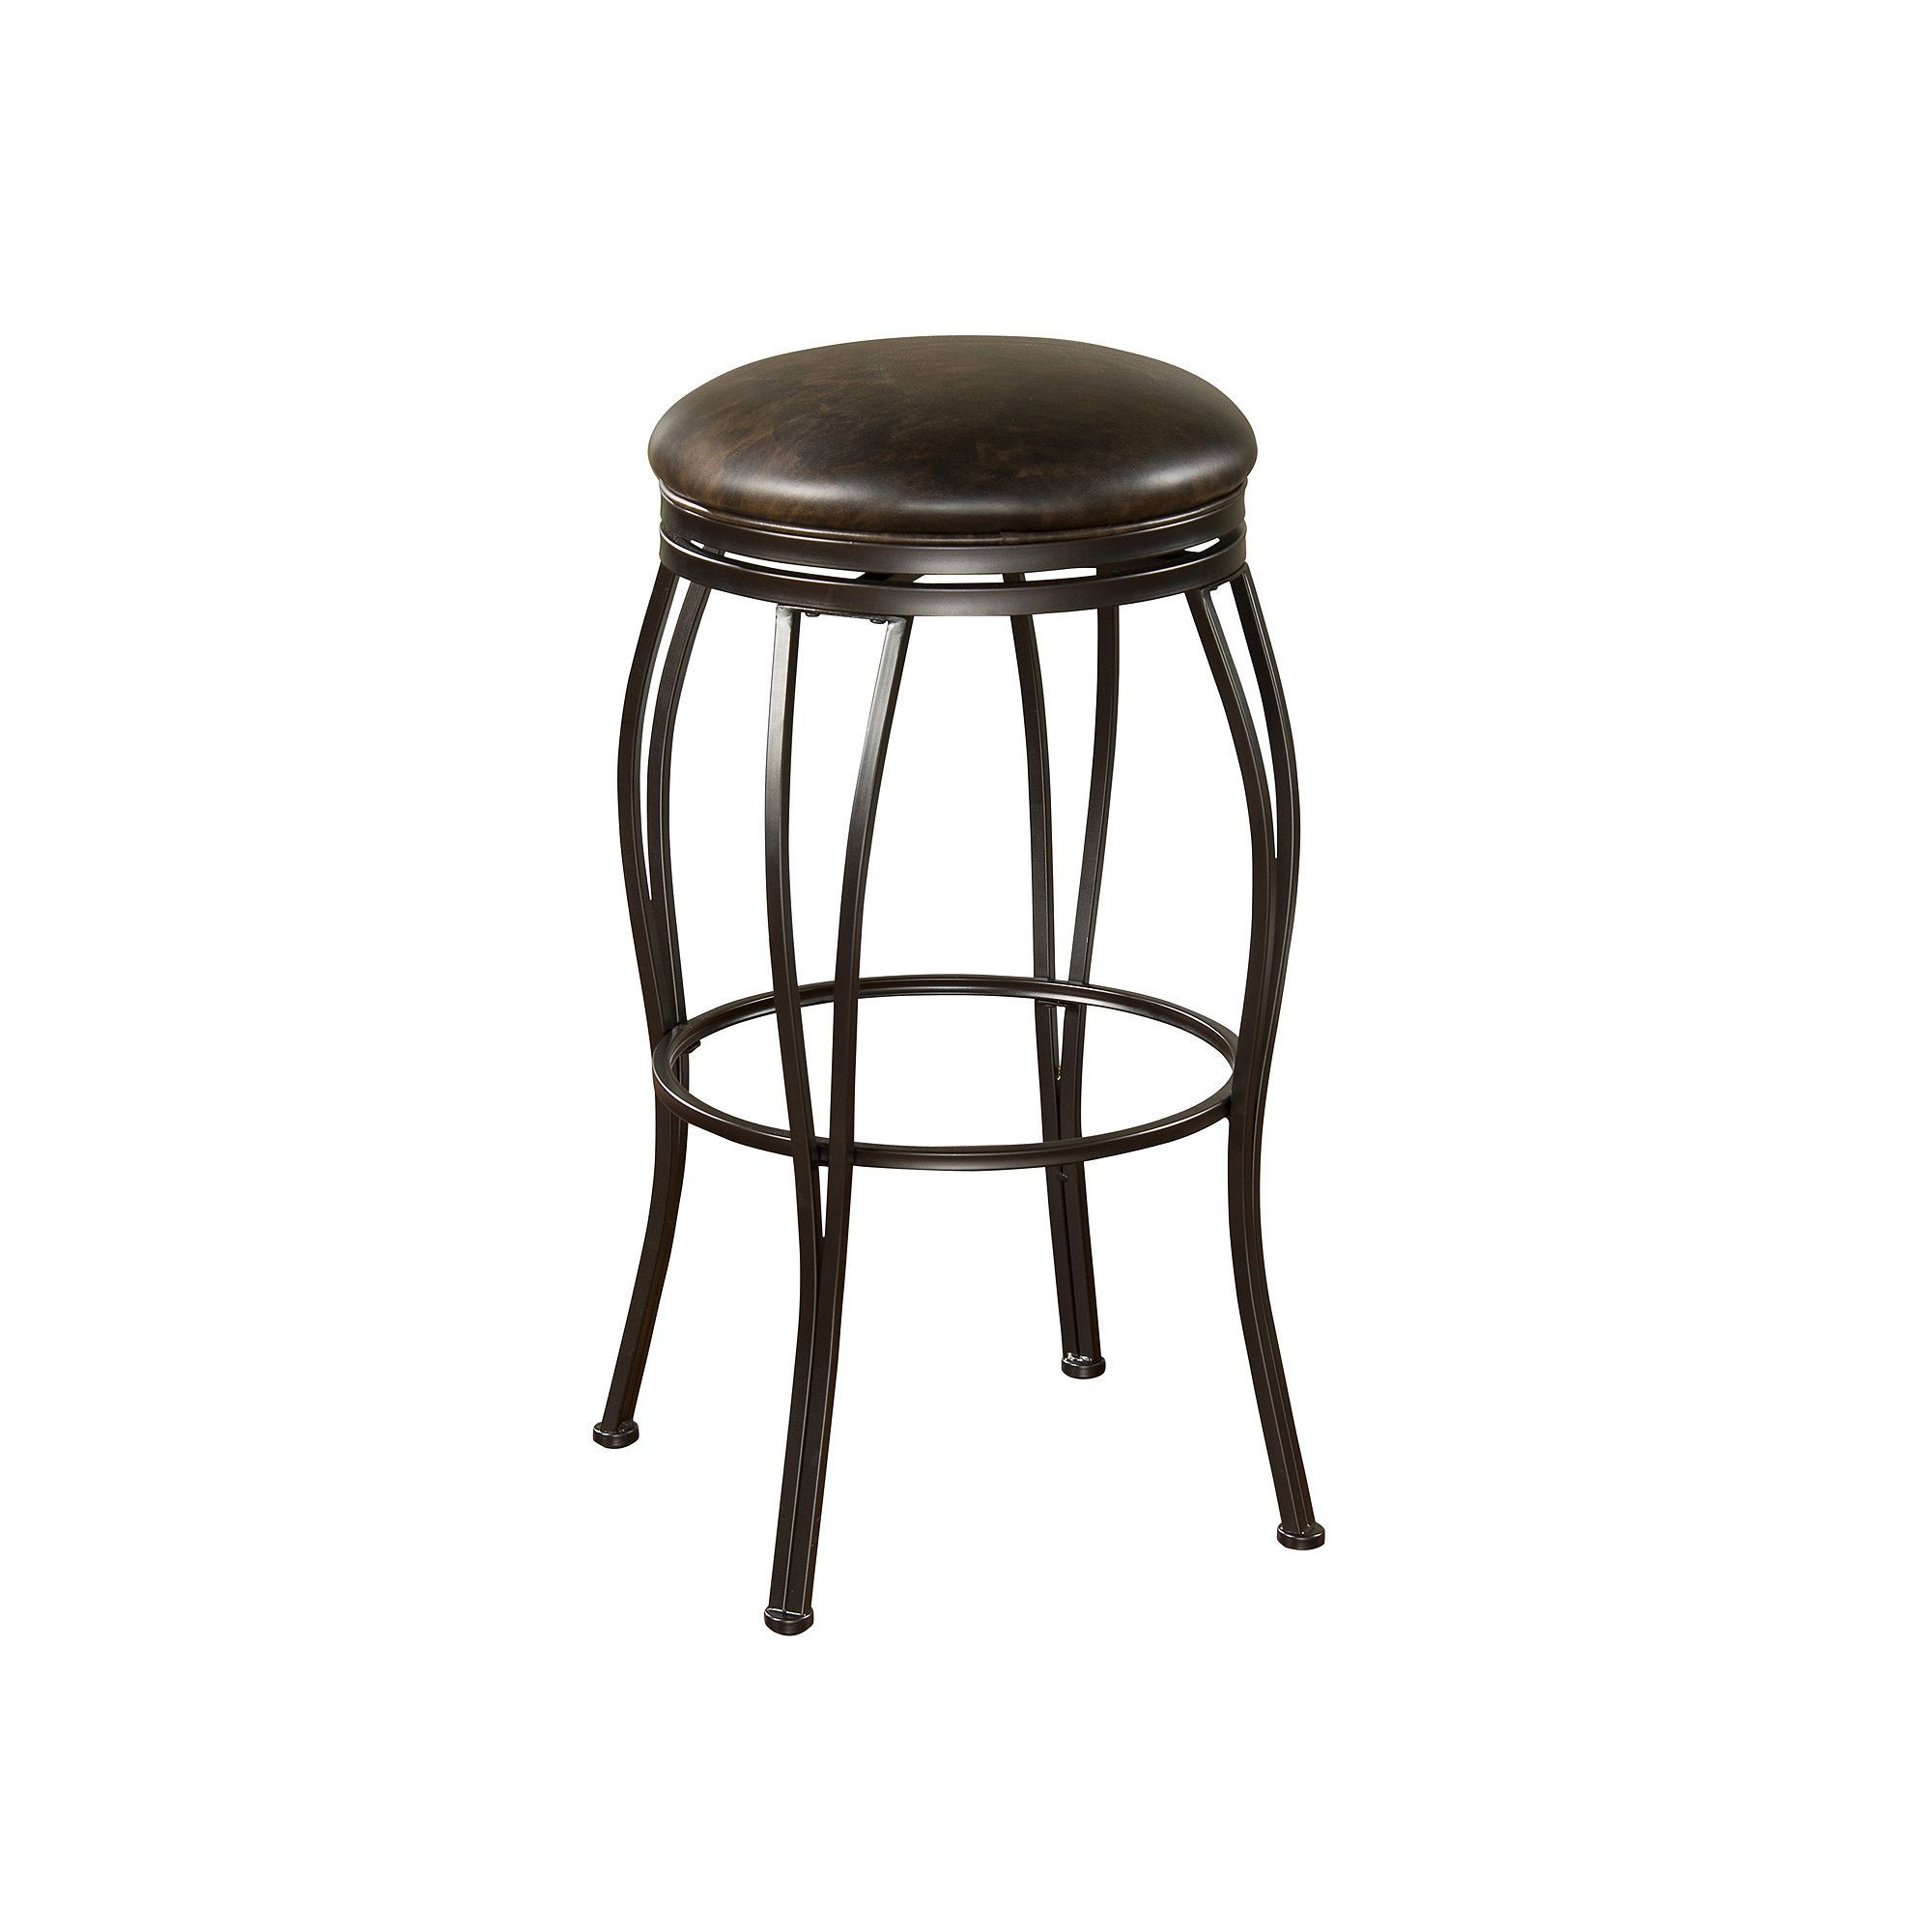 American Heritage Billiards Romano Swivel Counter Stool